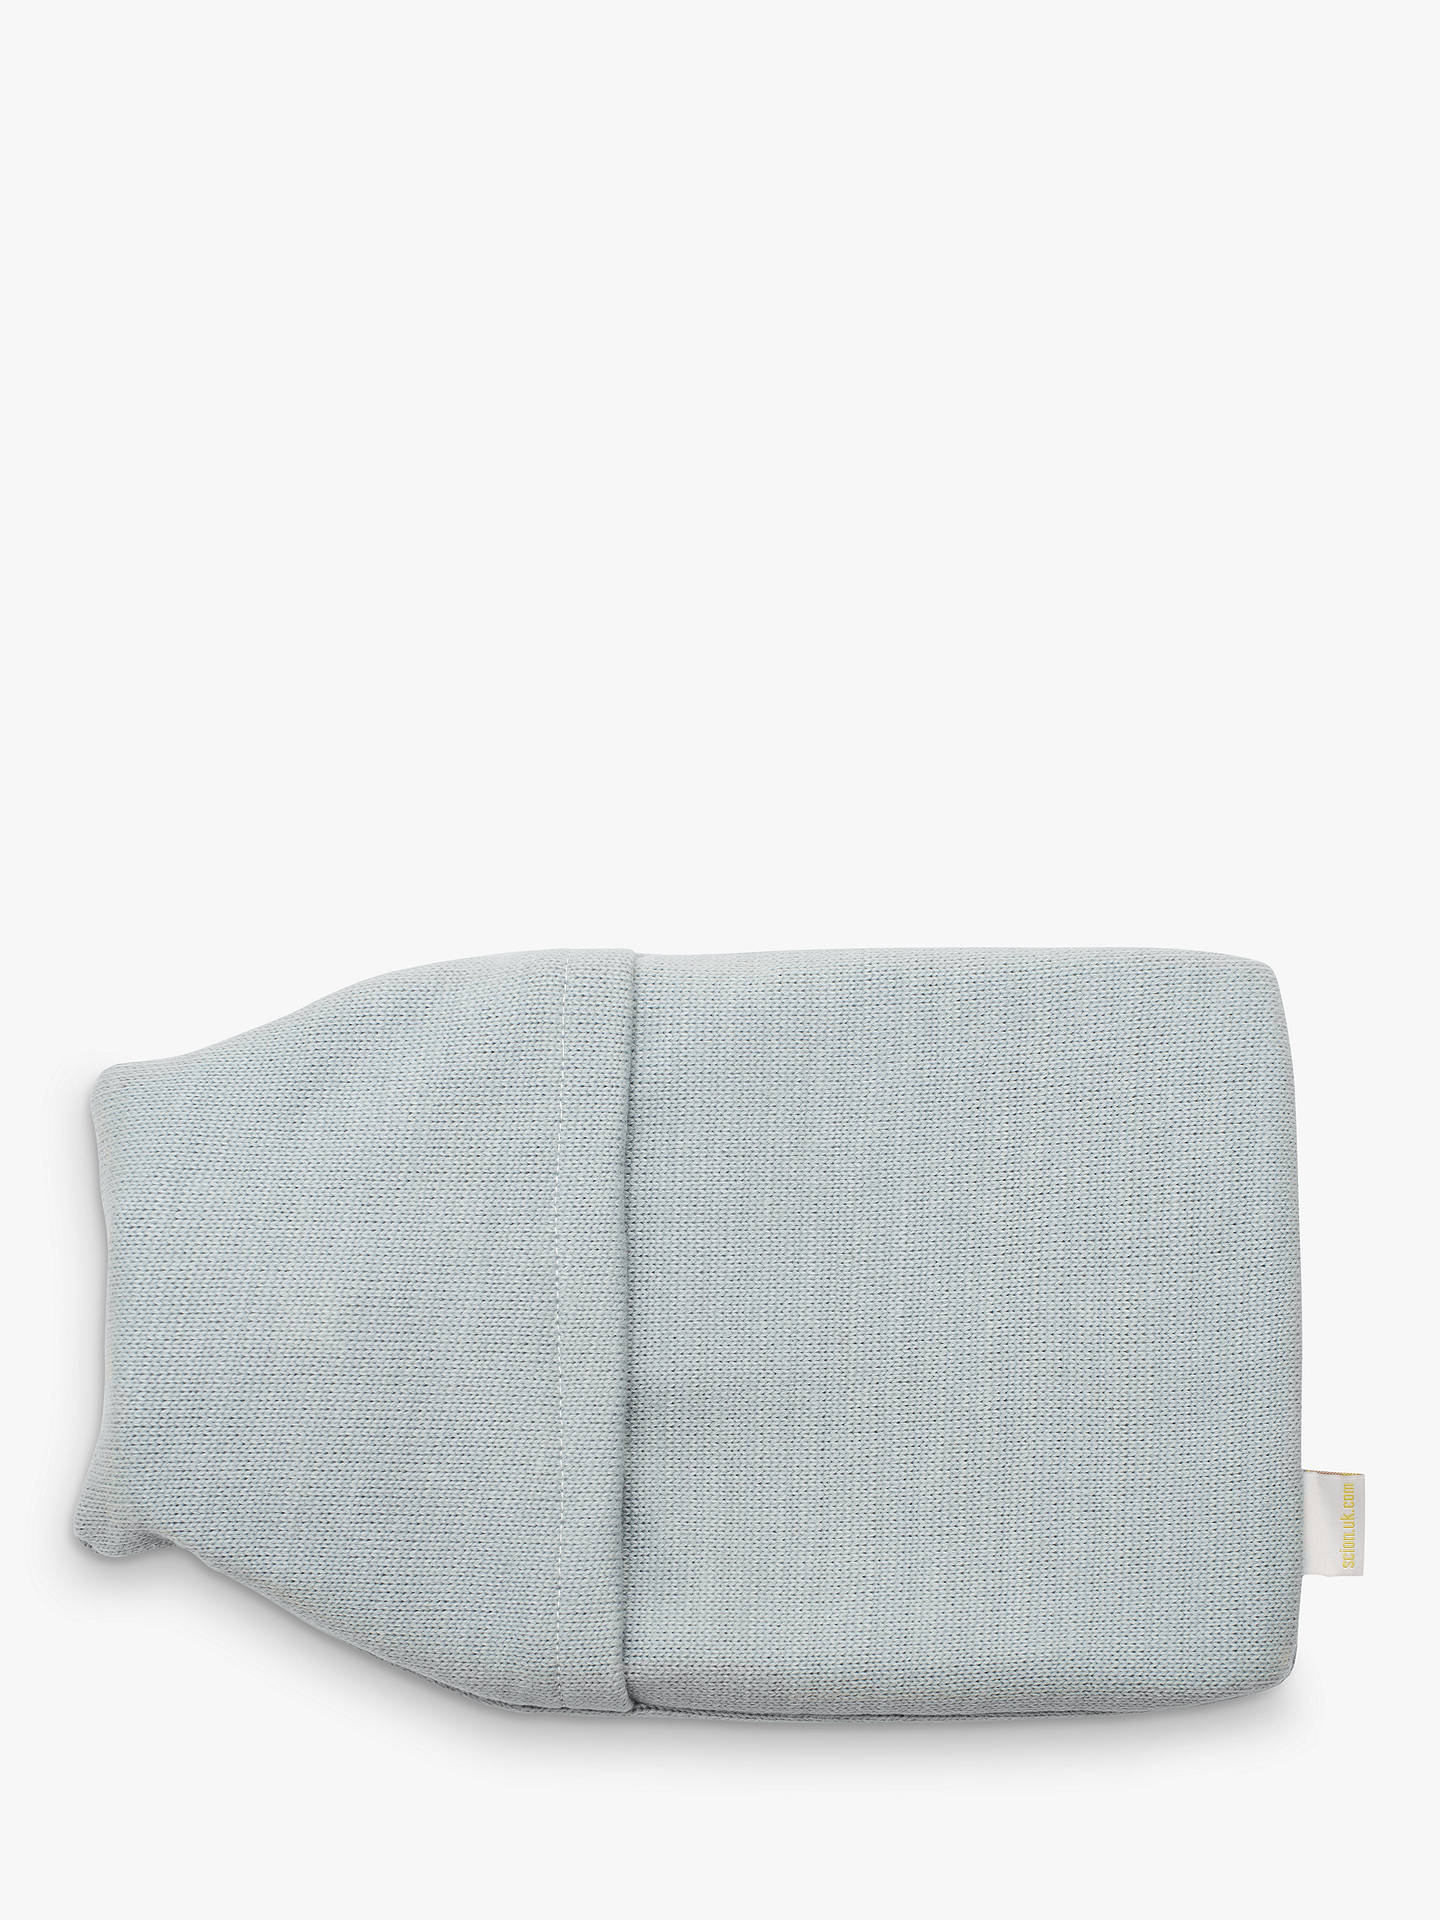 Buy Scion Mr Spike Hot Water Bottle, Sky Blue Online at johnlewis.com